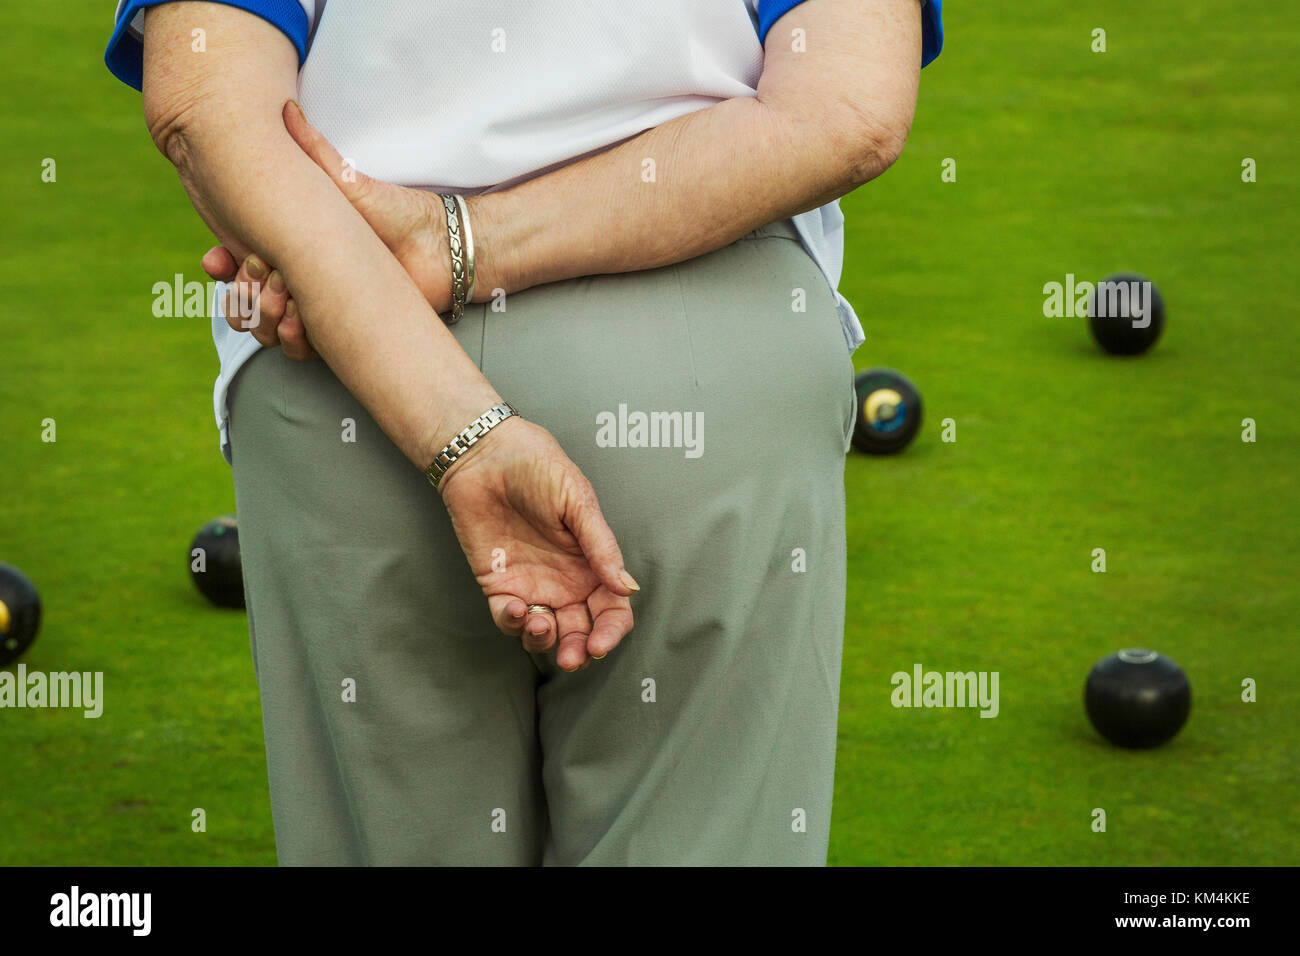 Rear view of a woman lawn bowls player with hands behind her back, and lawn bowls ranged across the playing surface. - Stock Image